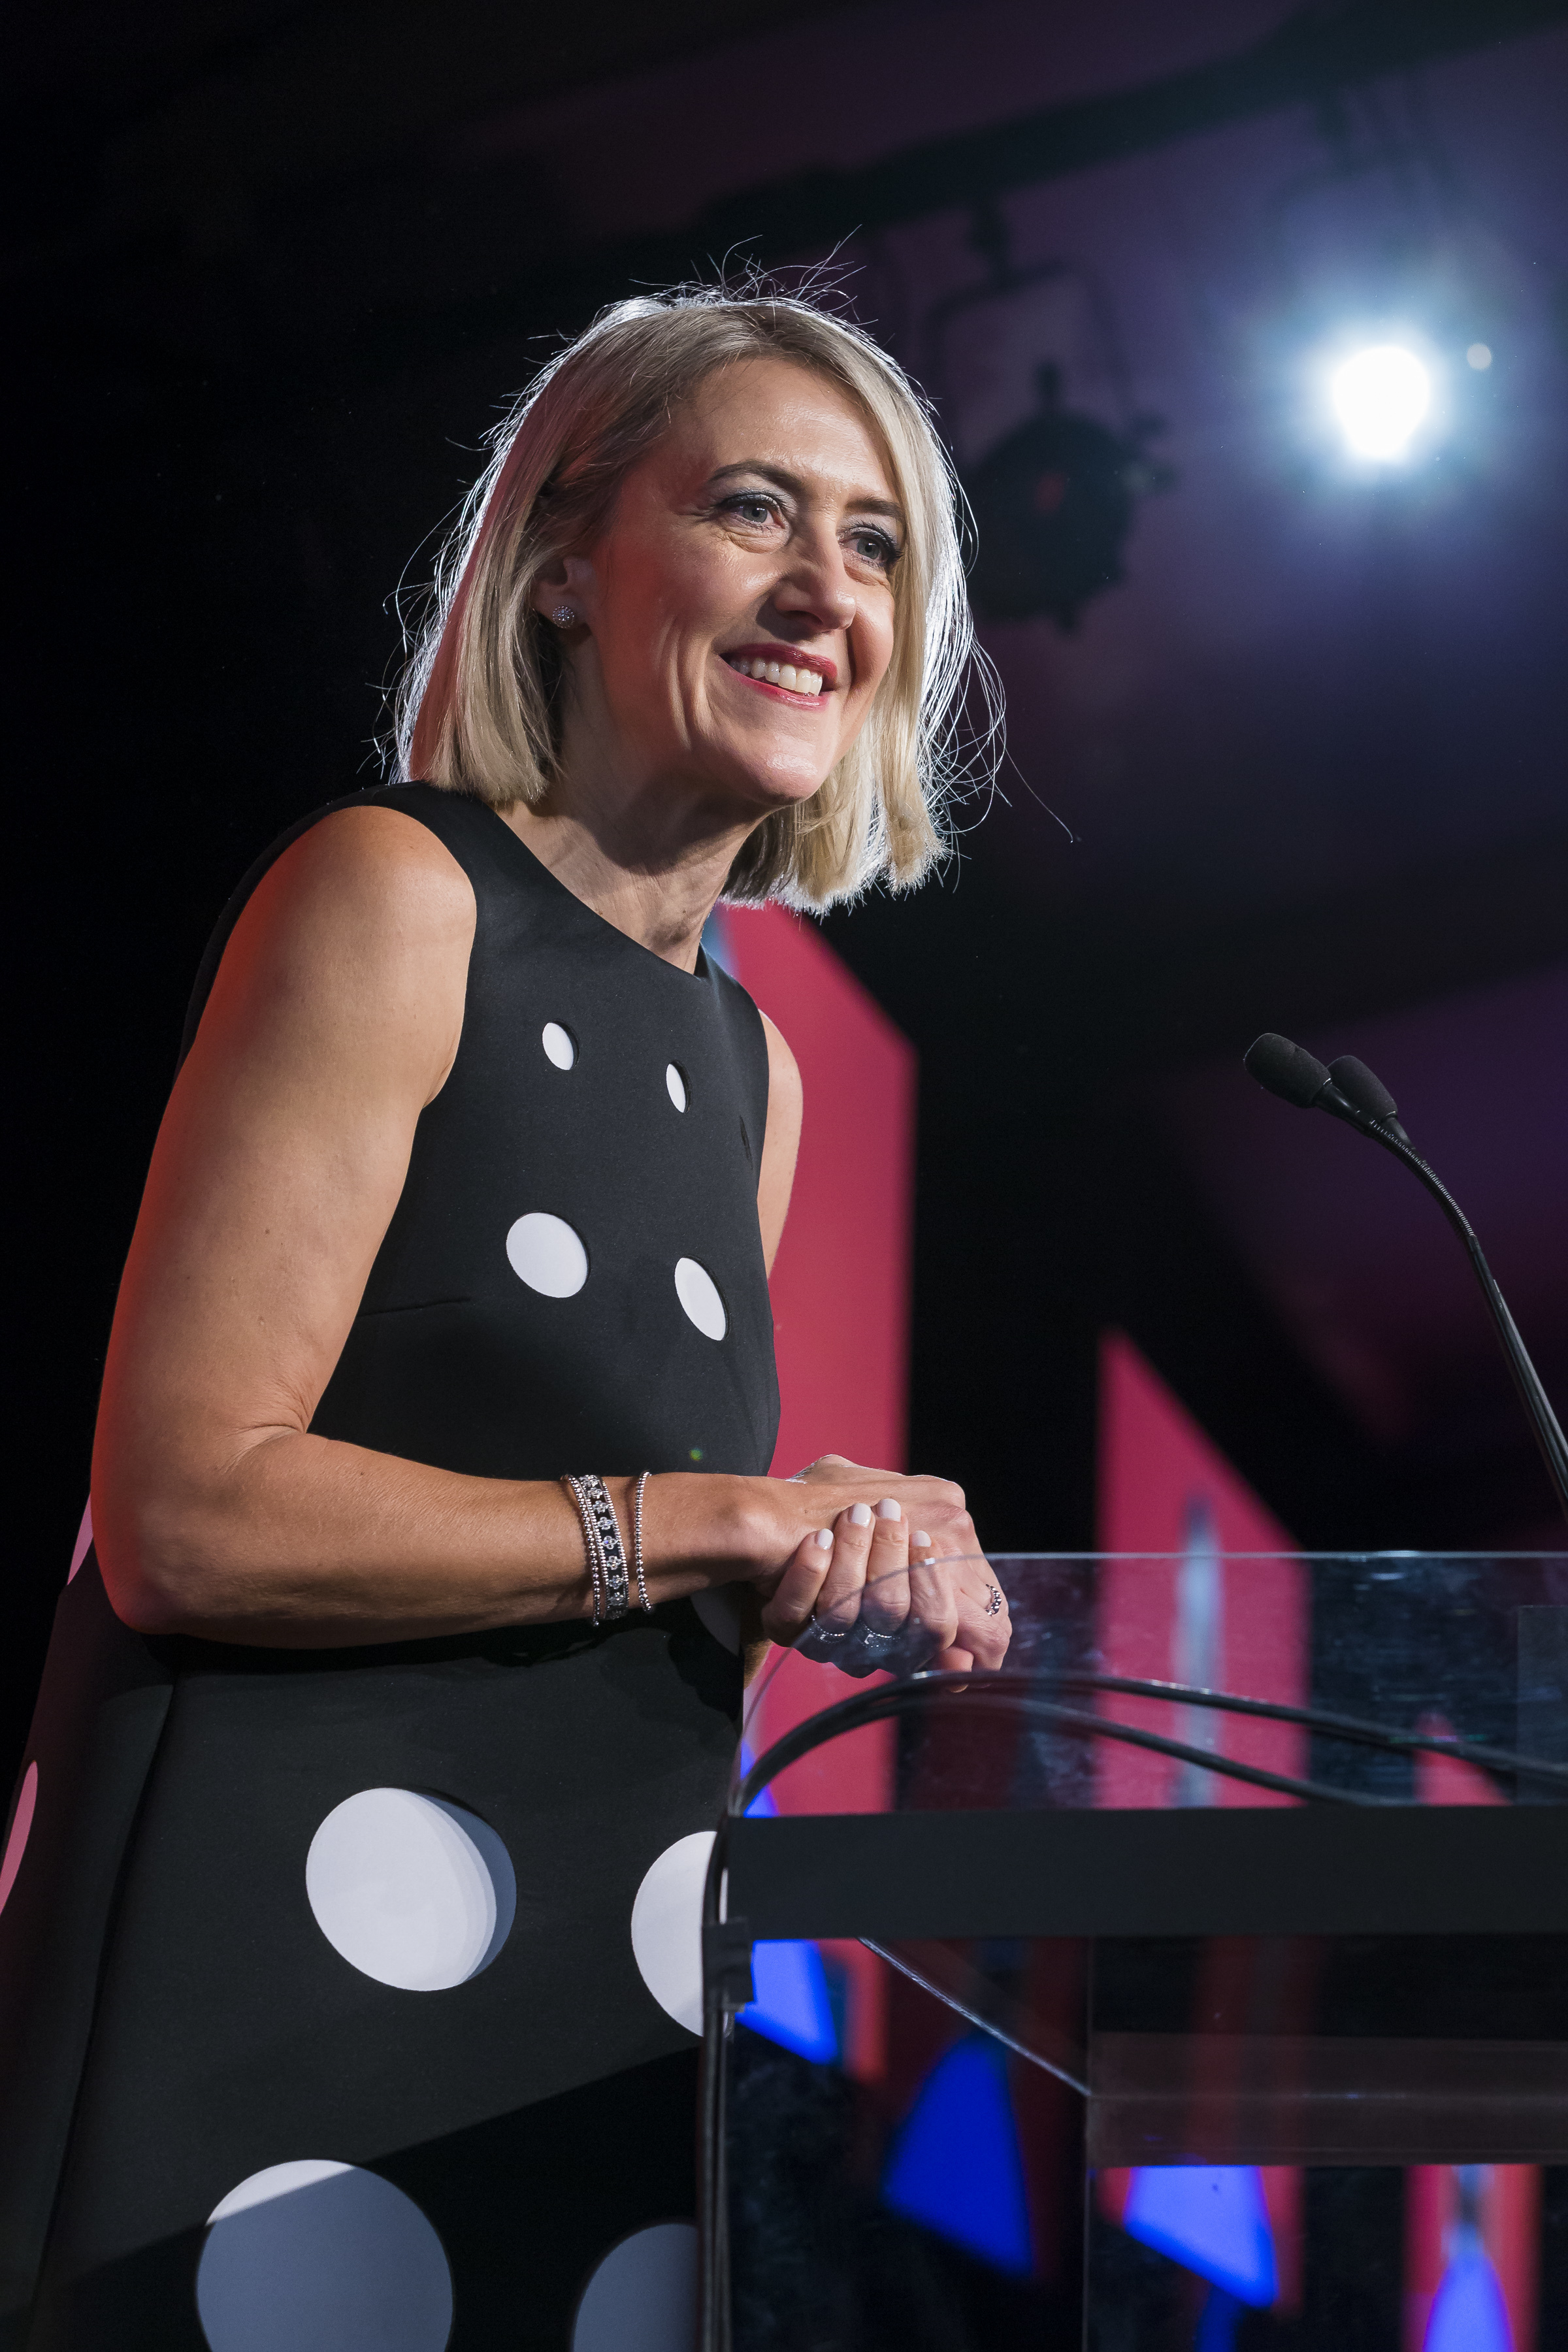 Caroline Baumann at the 2017 National Design Awards Gala held at the Cooper Hewitt Smithsonian Design Museum, NYC in New York, NY on October 19, 2017. (Photo by Scott Rudd/Sipa USA)(Sipa via AP Images)